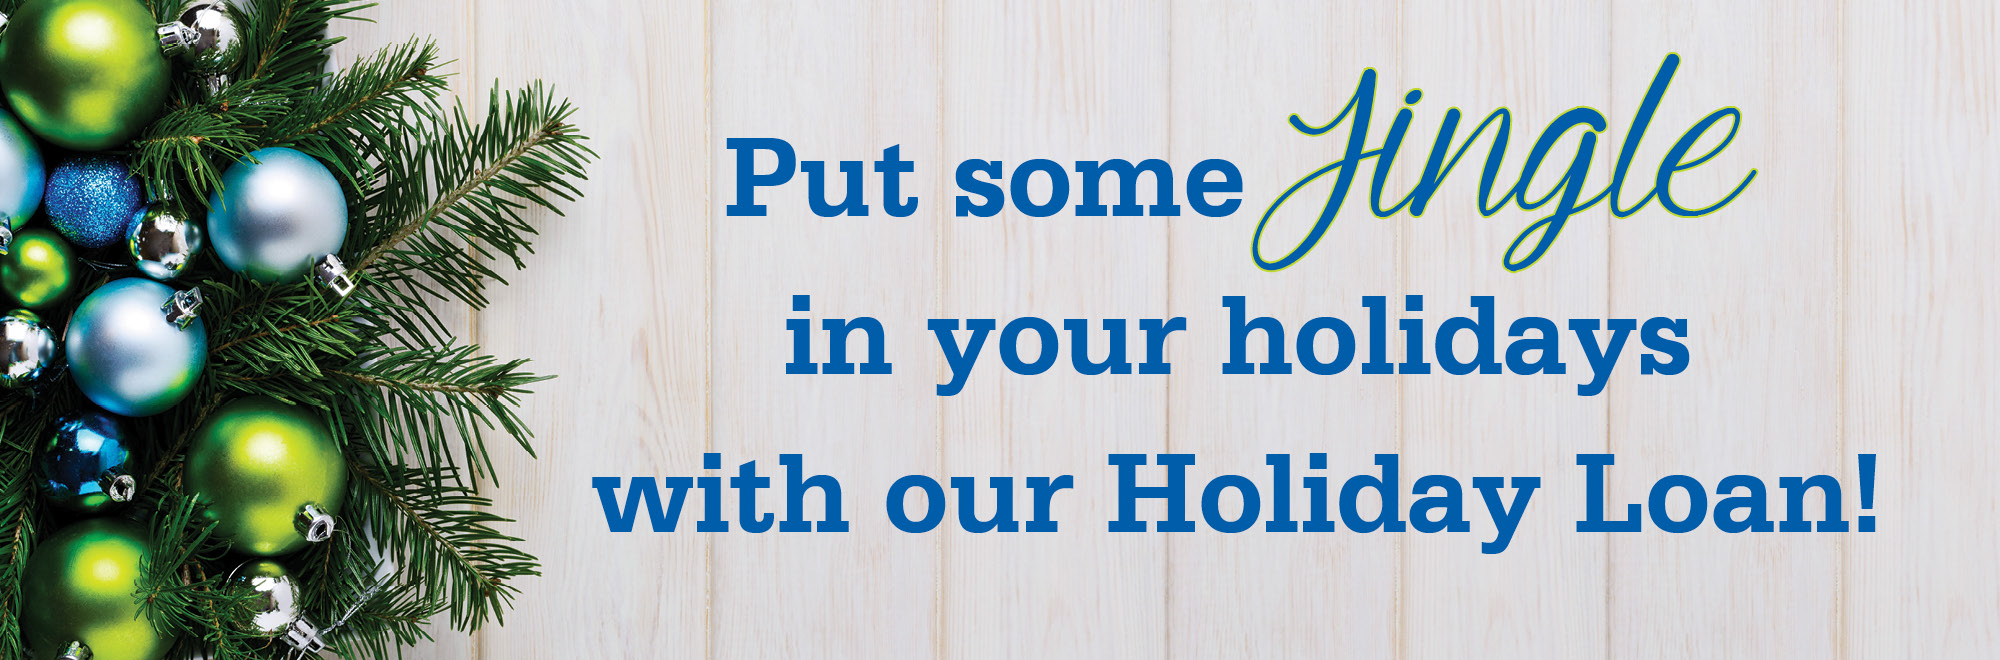 Put some jingle in your holidays with our holiday loan!